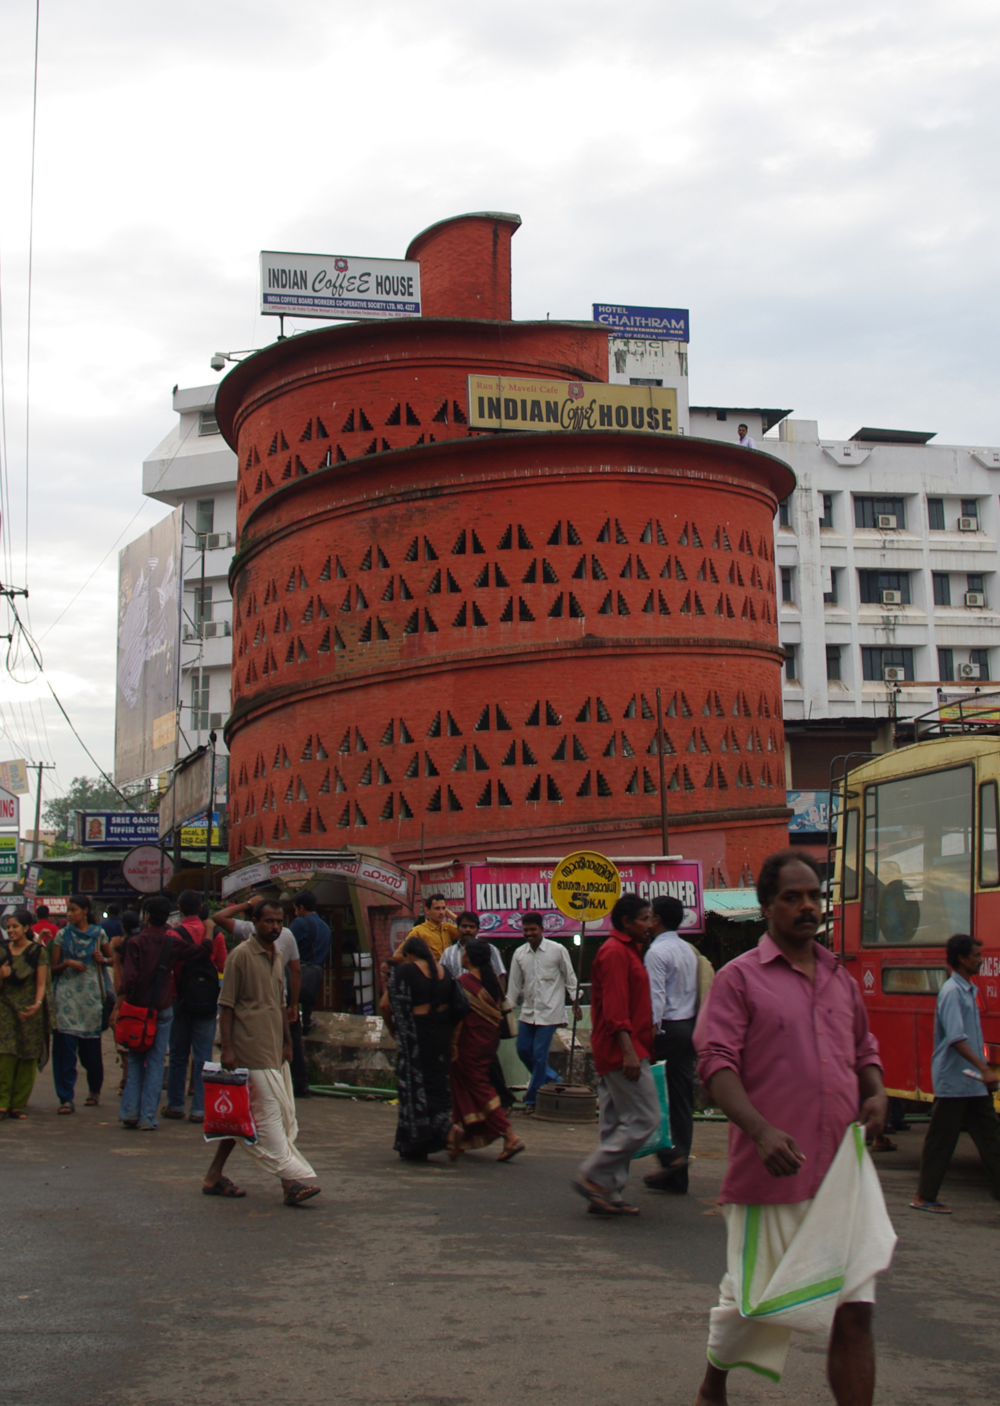 Indian Coffee House, located in Thampanoor, Trivandrum, completed in 1974   The downtown branch of the Indian Coffee House is among the most iconic buildings in Trivandrum.  Sited opposite the train station and adjacent to the bus depot, the structure serves as an arresting symbol of the city, its red paint glowing during the day and its lantern-like perforations emitting light at night.  The cafe's seating is arrayed along a continuously sloping spiral path.  At the center of the spiral is a stacked series of bathrooms, ventilated through a central chimney.  Inside, the spiral terminates in the manager's office, which opens onto a roof that affords generous views of the capital.